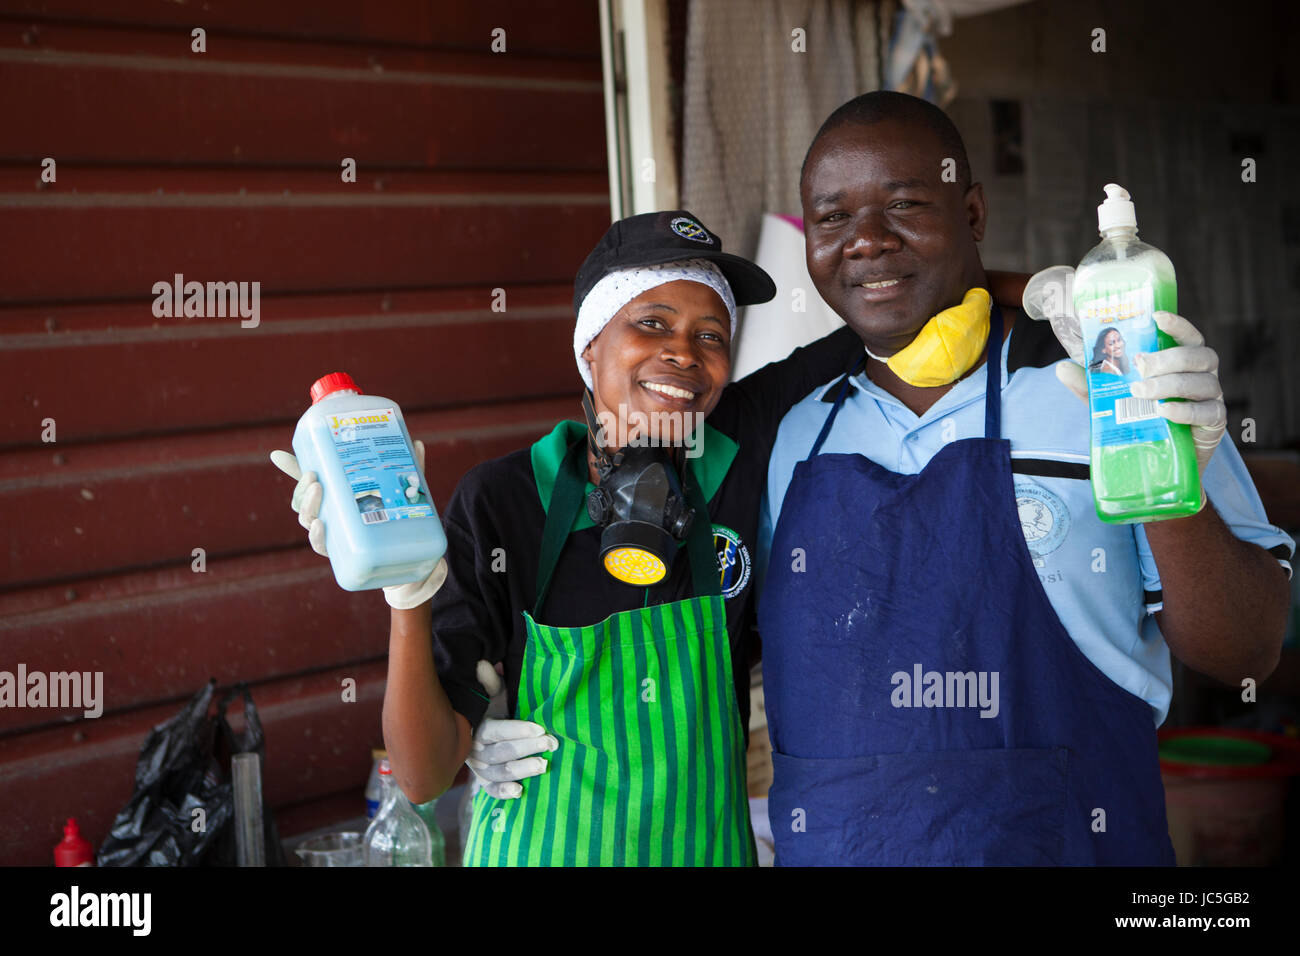 Small business owners who produce cleaning products. Tanzania, Africa Stock Photo